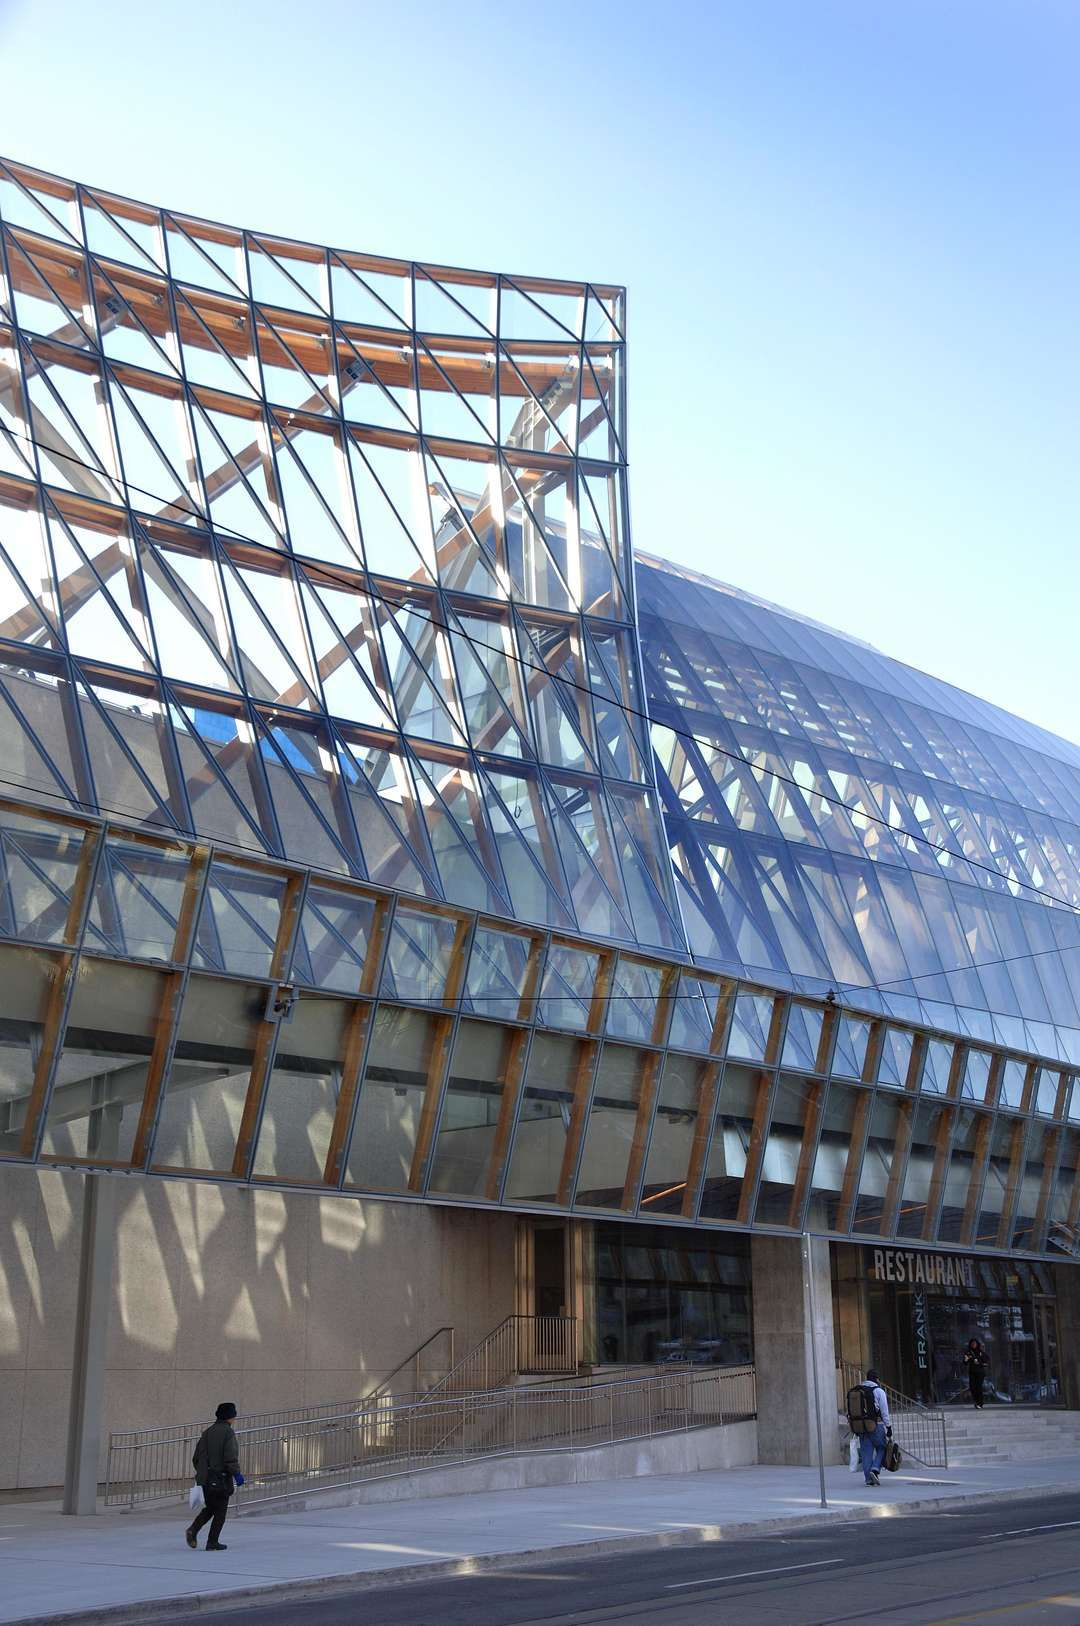 Glass facade architecture  The Bent Glass Facade: Architecture That Curves Outside the Box ...